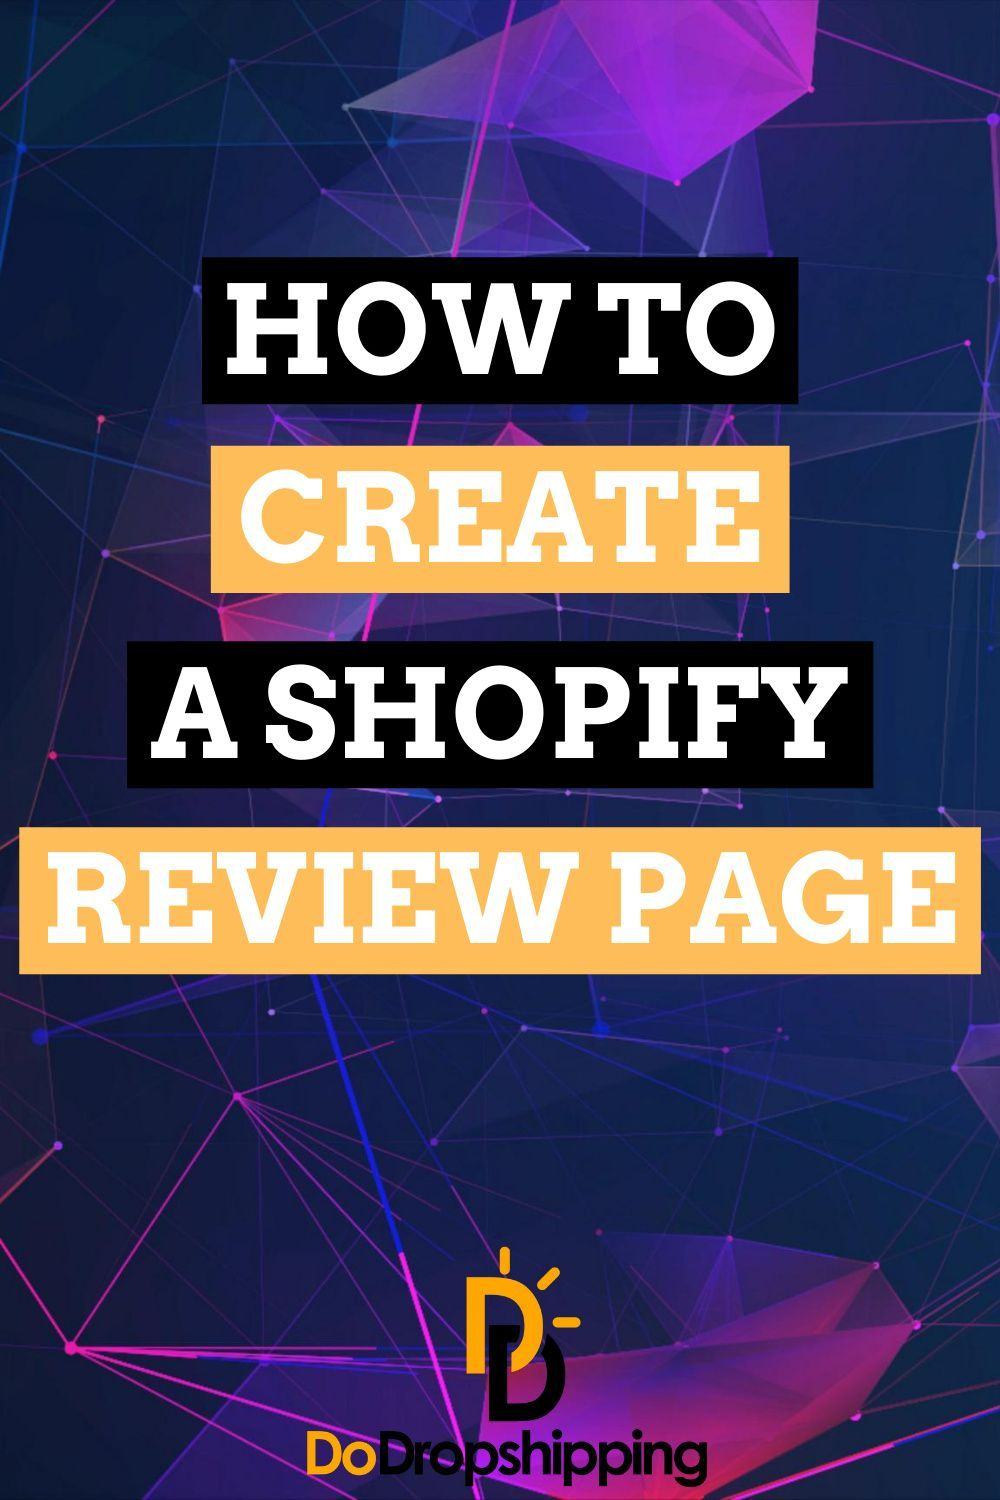 How to Create a Unique Shopify Review Page? (+ 8 Examples